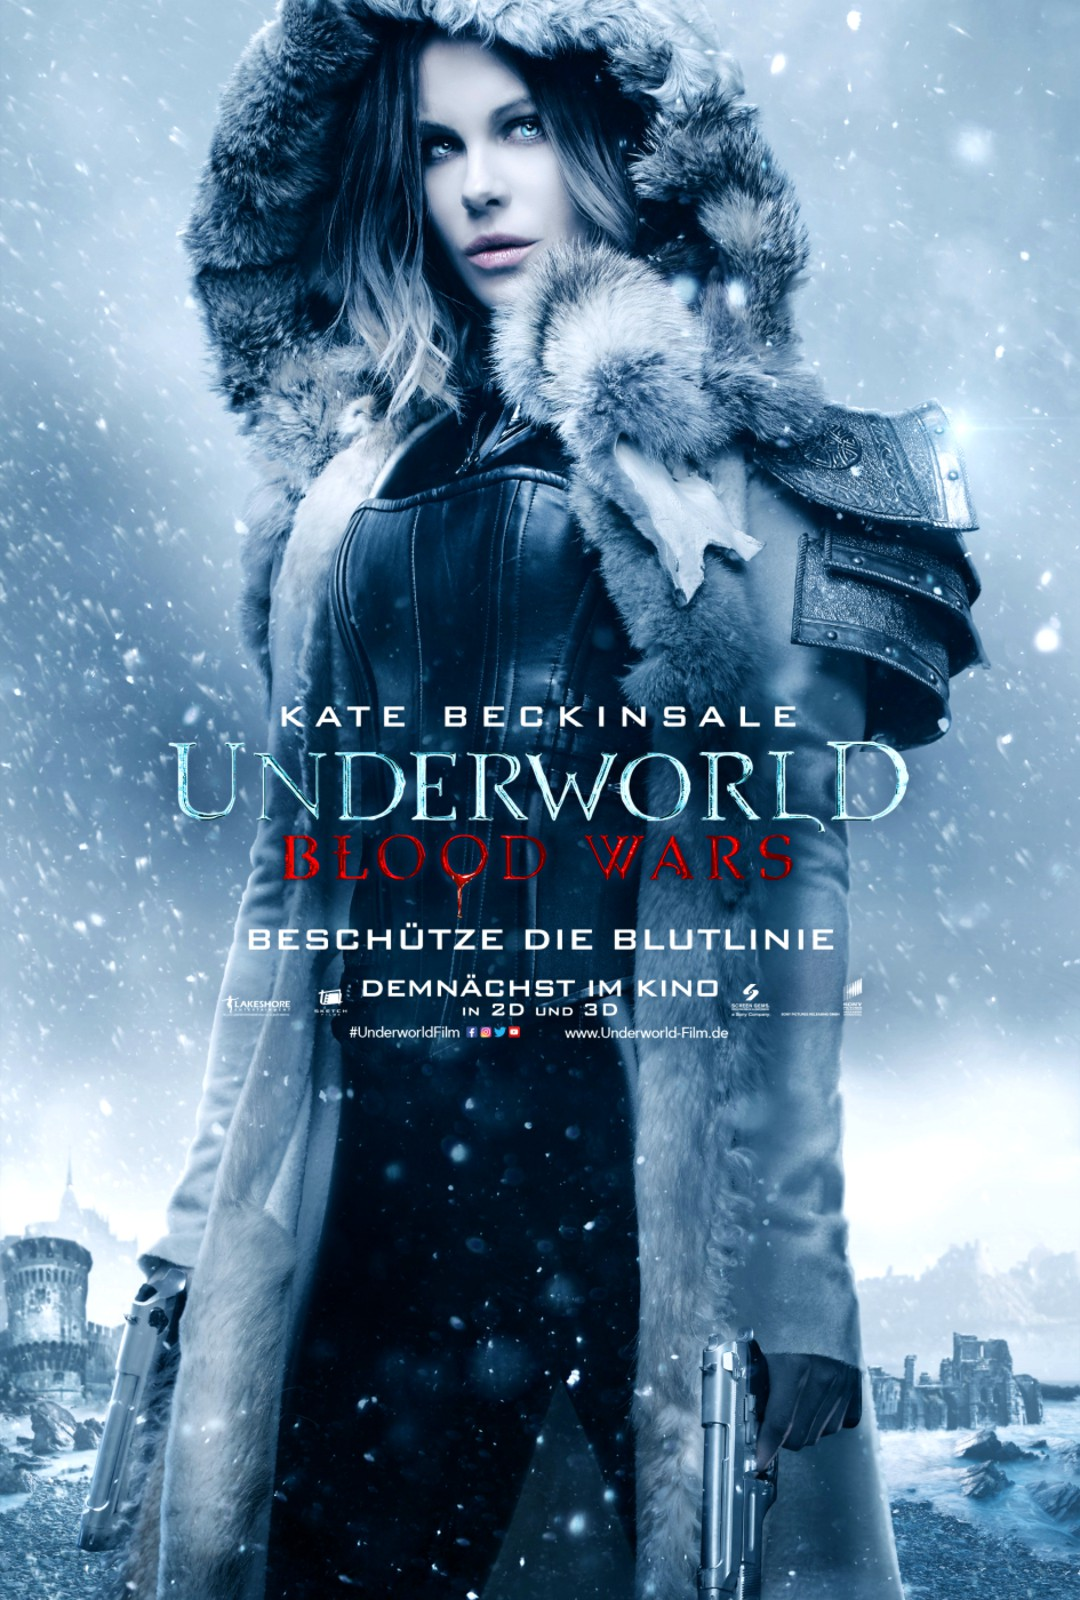 Underworld 5 Blood Wars: 3. deutscher Trailer - Bild 5 von 7